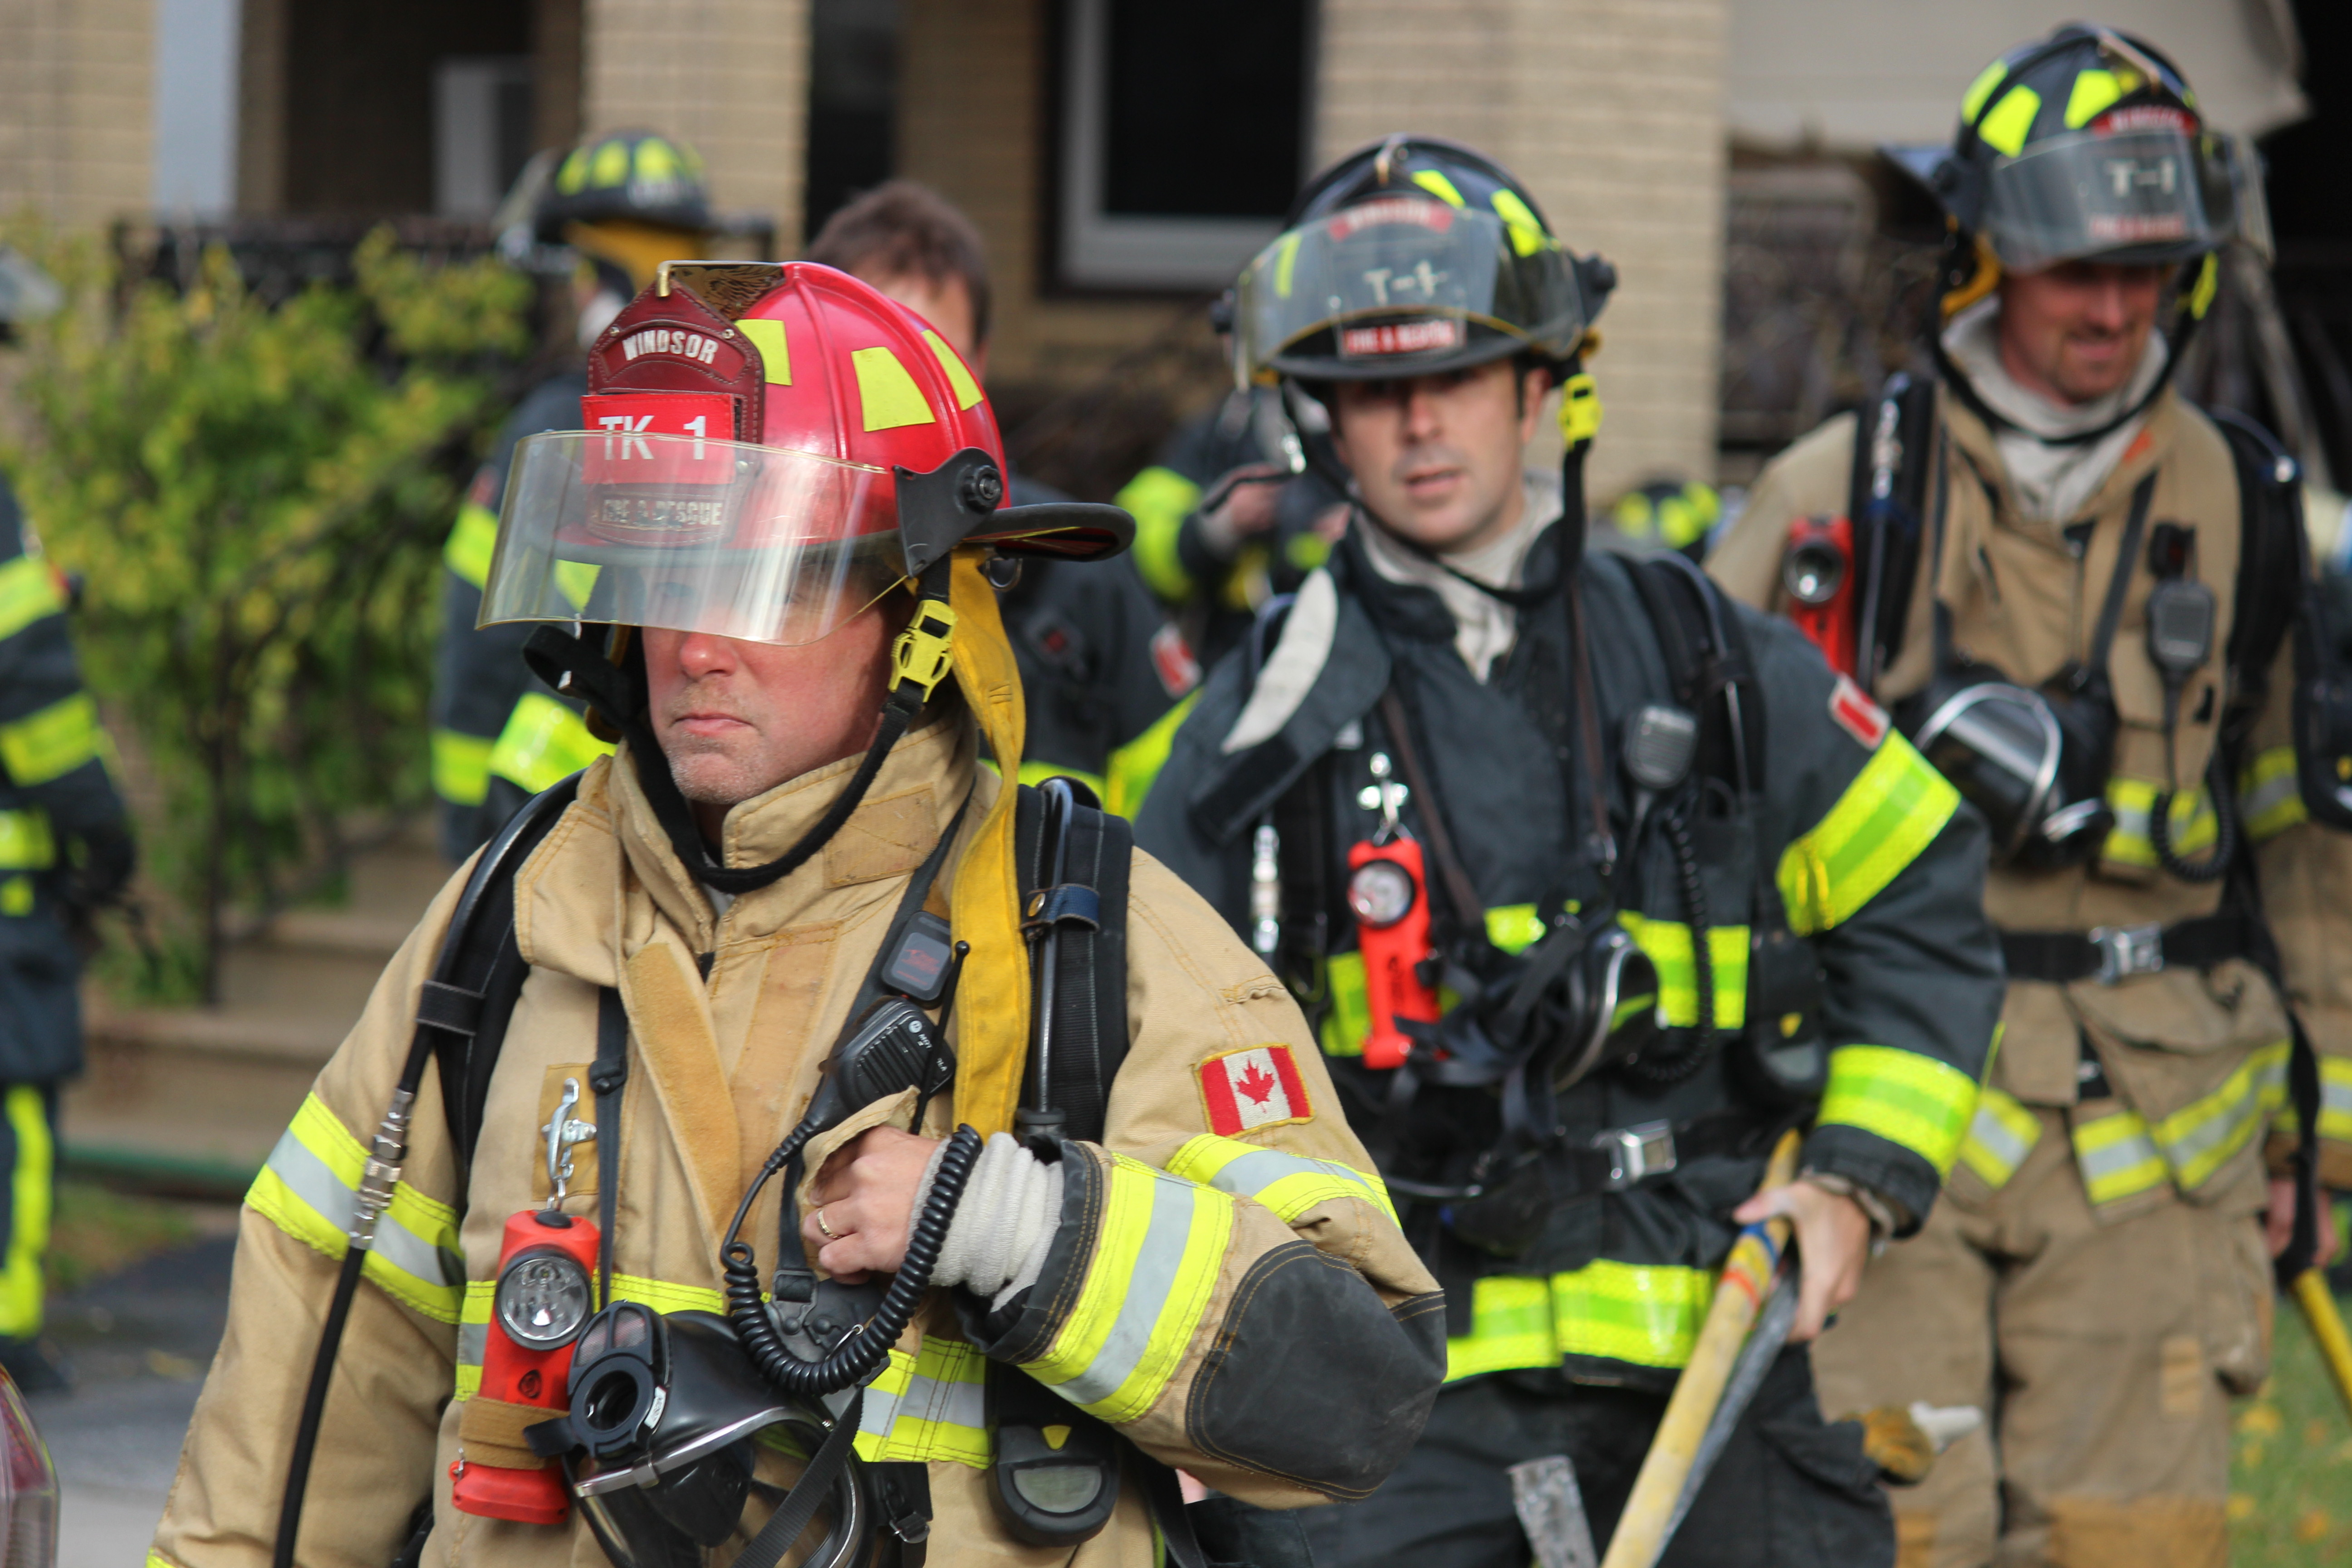 Firefighters at a fire at 234 Brock St. in Windsor, October 29, 2015. (Photo by Adelle Loiselle)